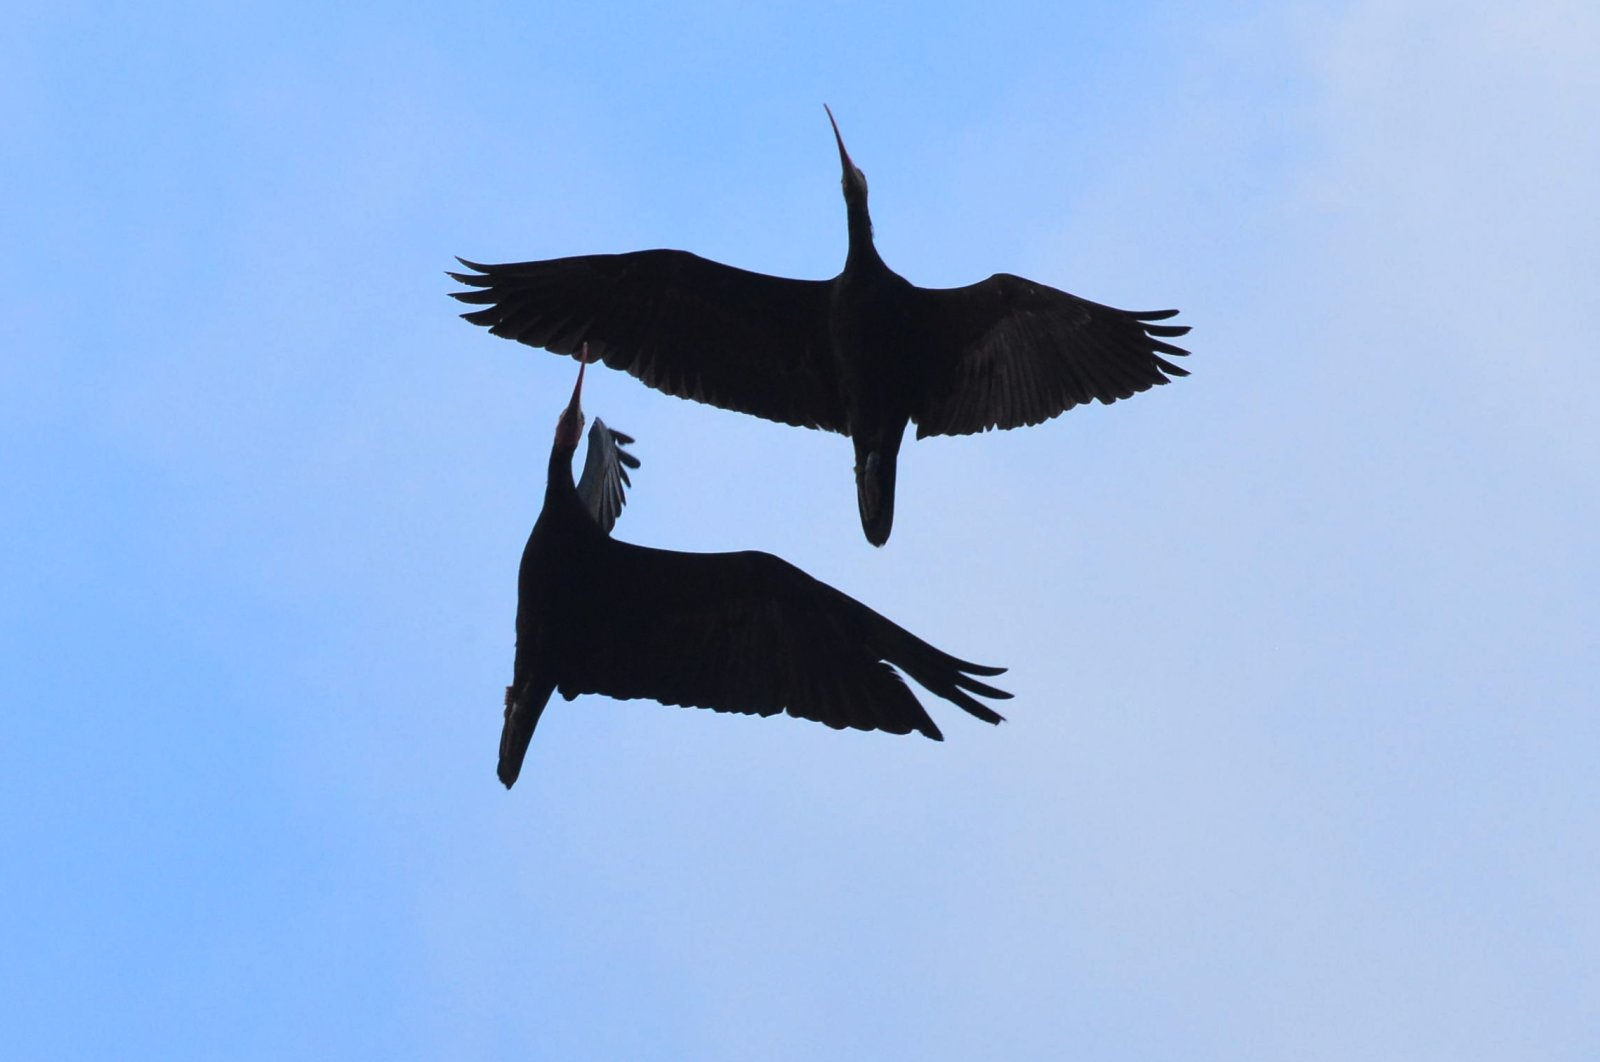 A couple of northern ibis birds are seen flying in the clear blue sky, Feb. 19, 2021. (AA Photo)